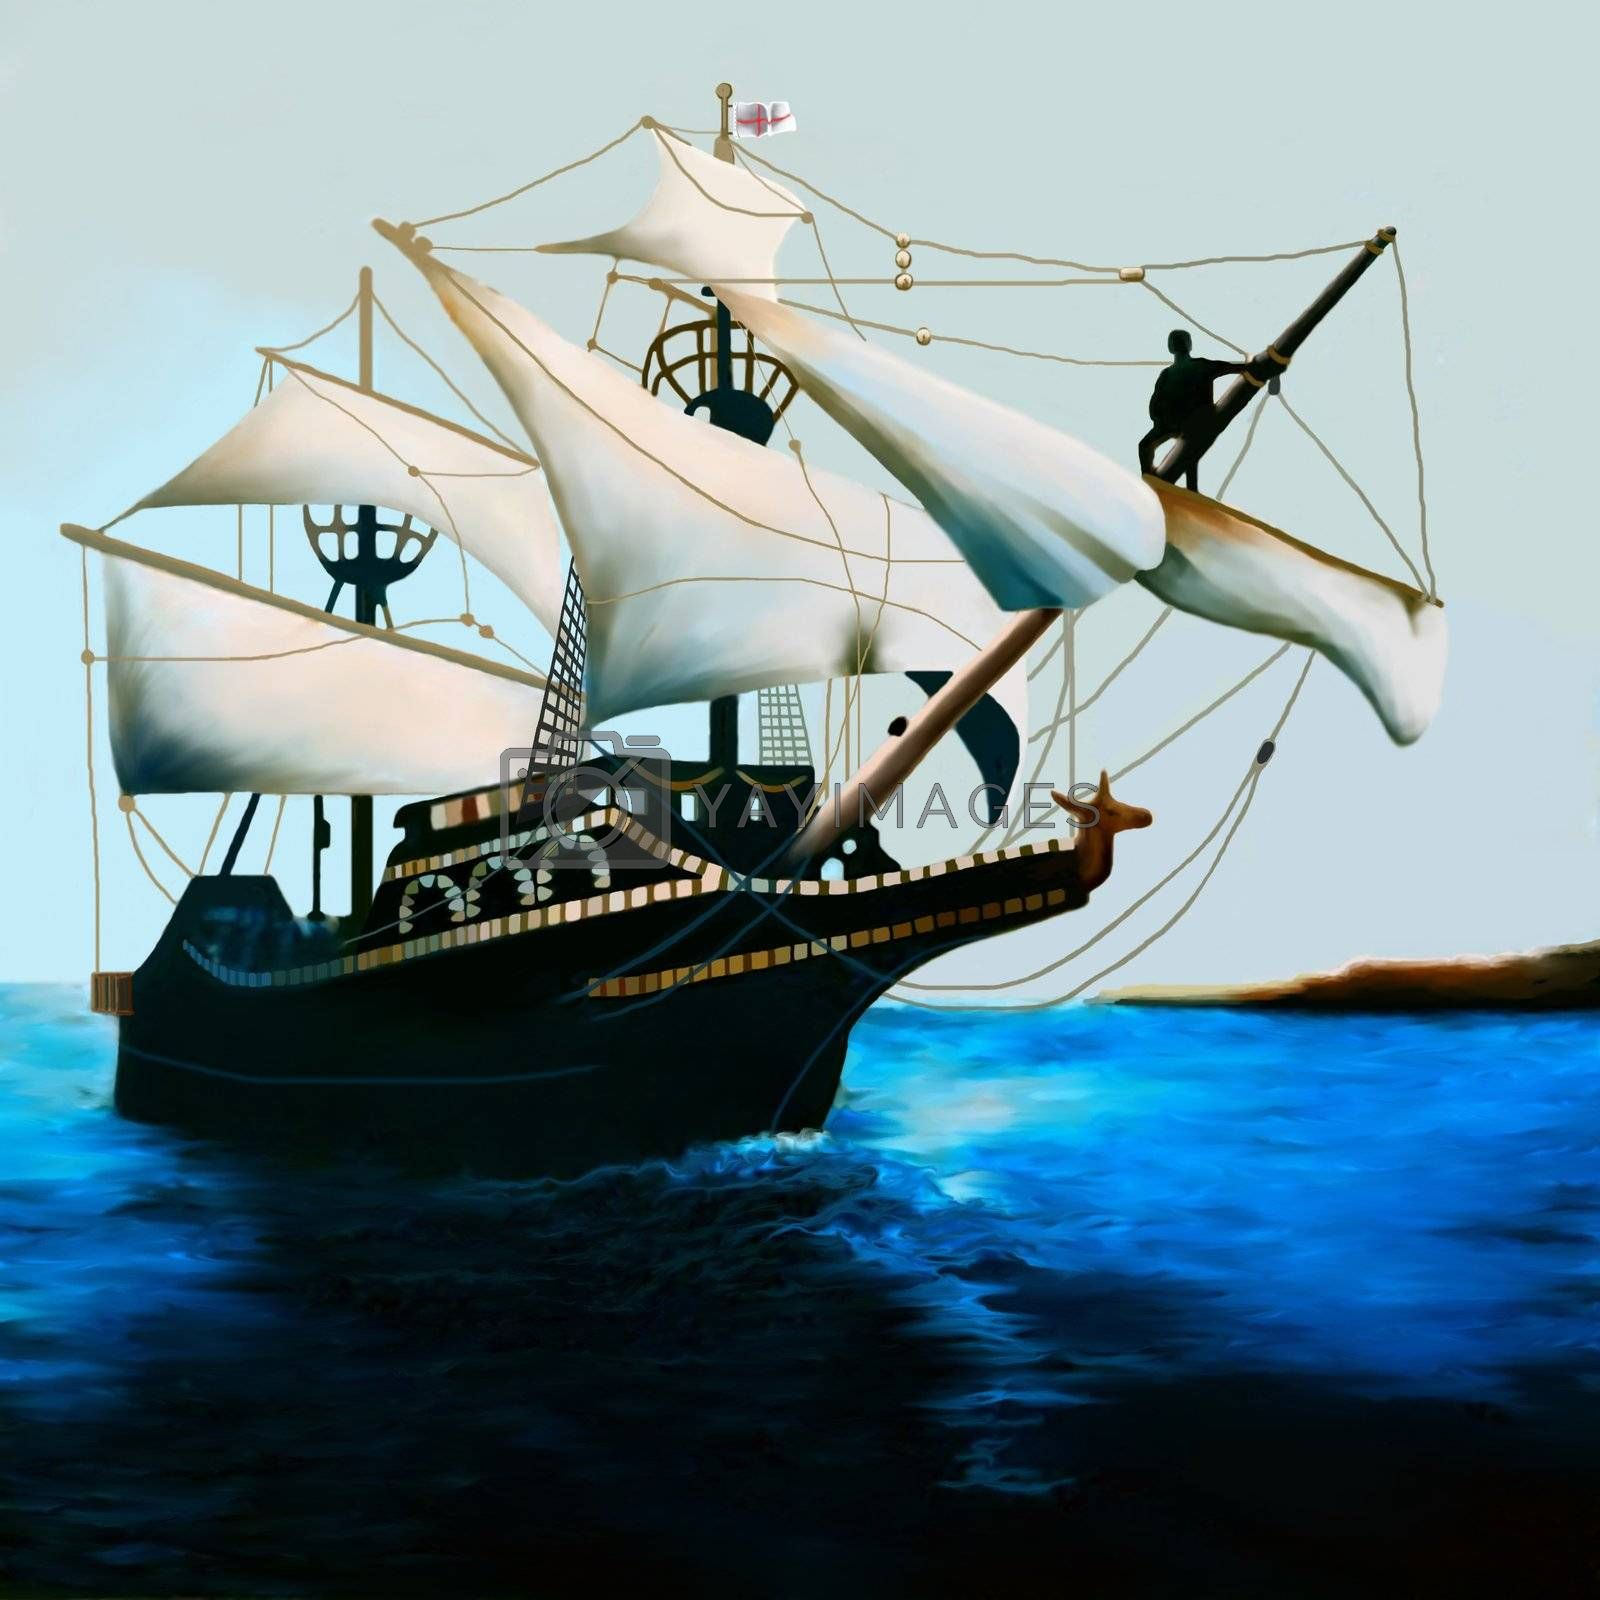 The Golden Hind is an English galleon best known for its circumnavigation of the globe between 1577 and 1580, captained by Sir Francis Drake.